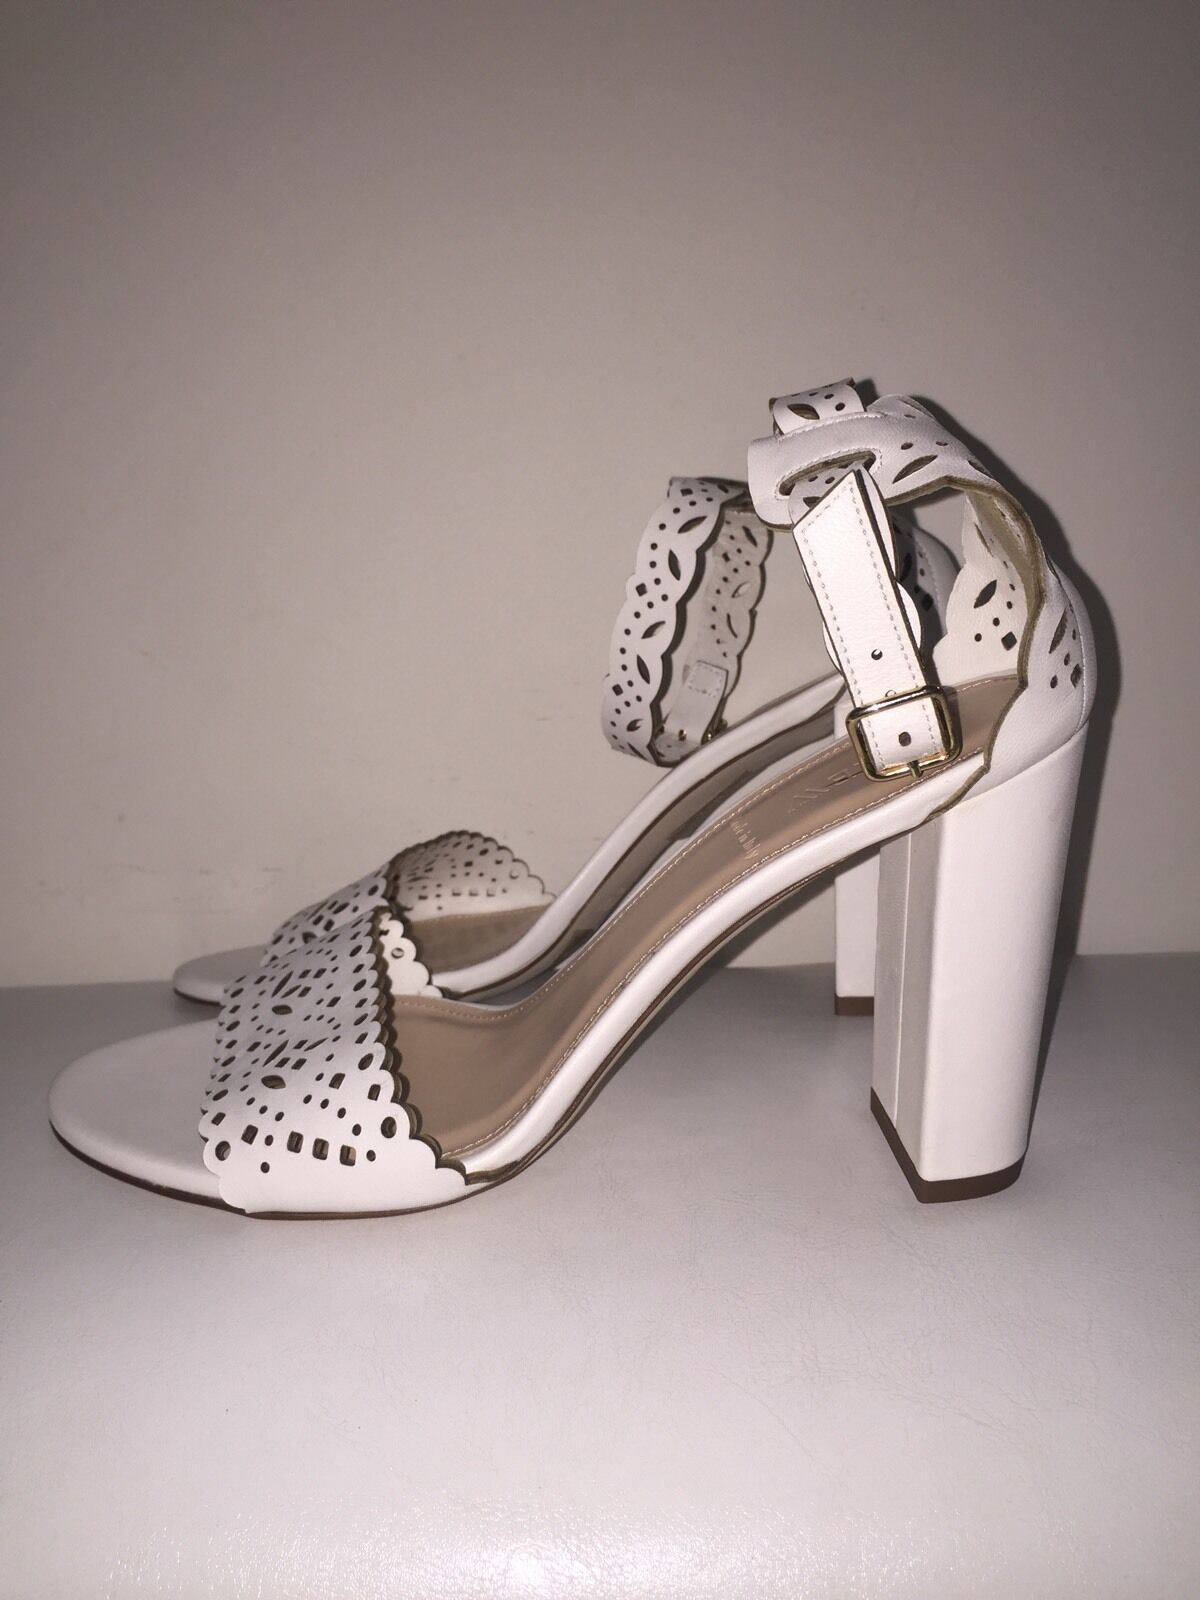 NEW JCREW LEATHER EYELET HIGH-HEEL SANDALS 8 SHOES f1317  268 WHITE NEW